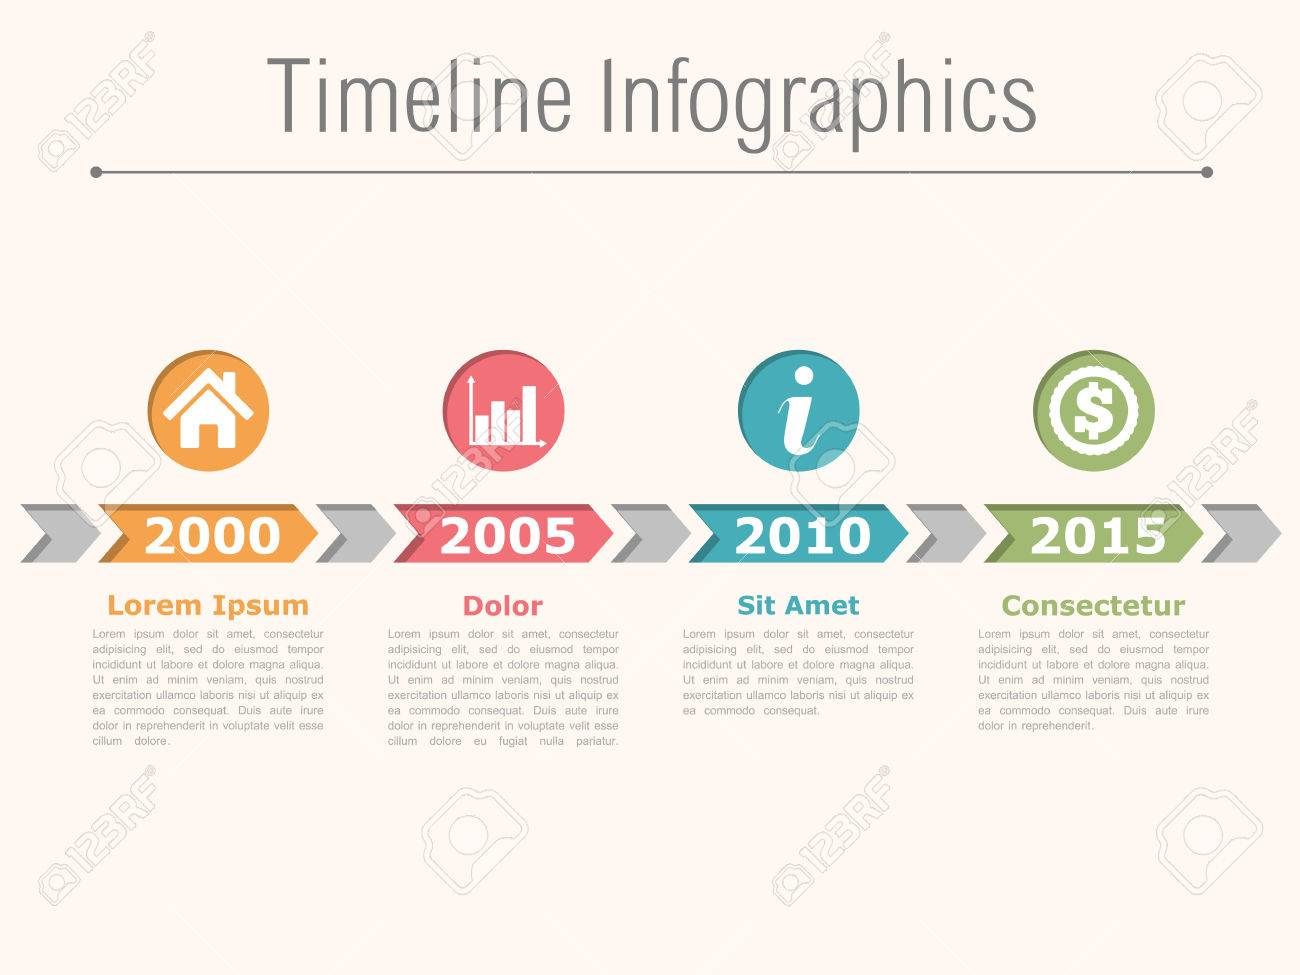 Timeline infographics design with arrows, process diagram - 46337817